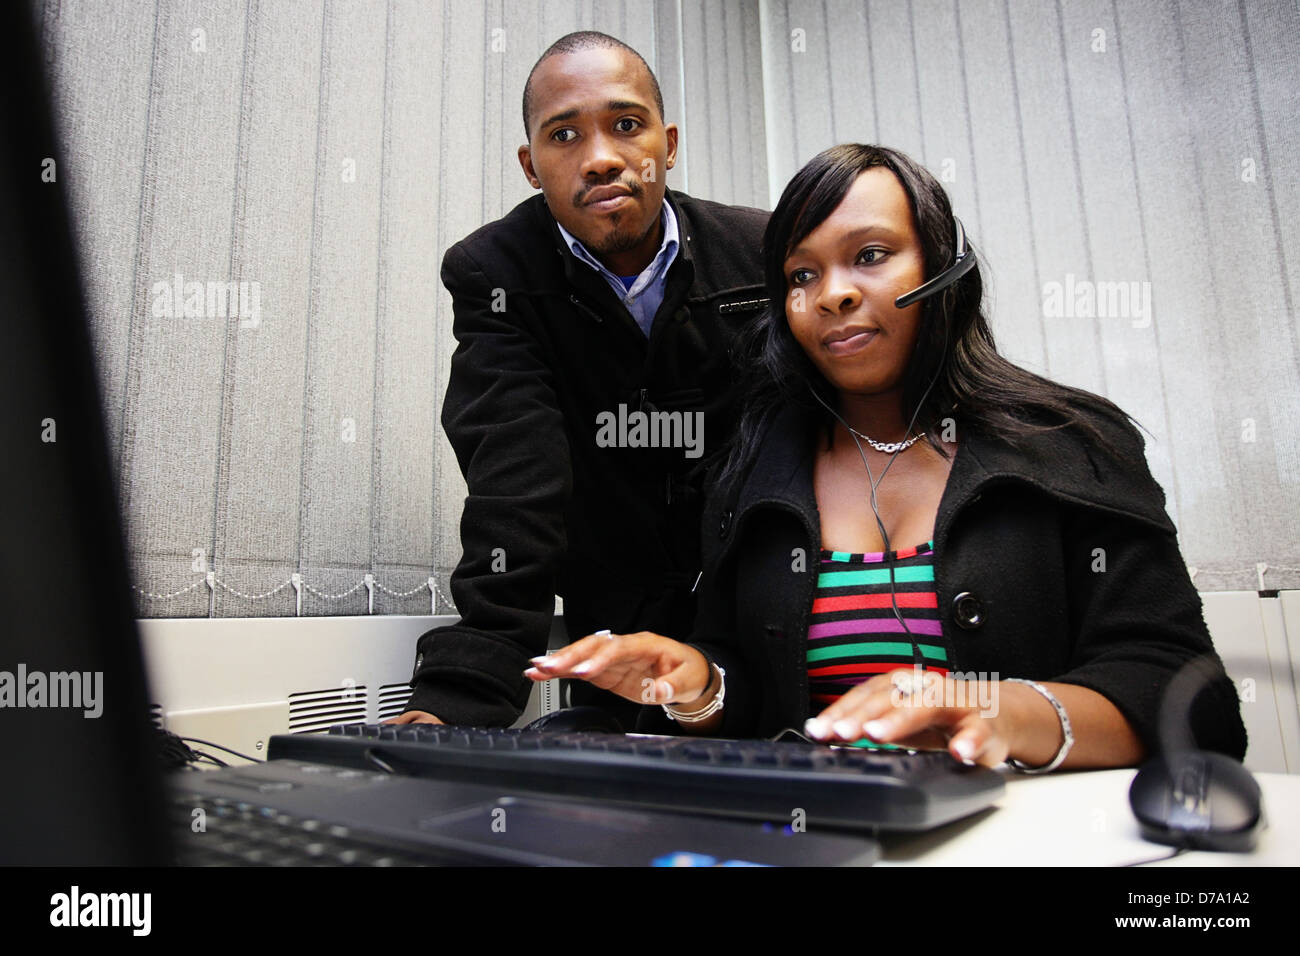 Call center. Cape Town based students training at a computer to be entry-level workers. - Stock Image